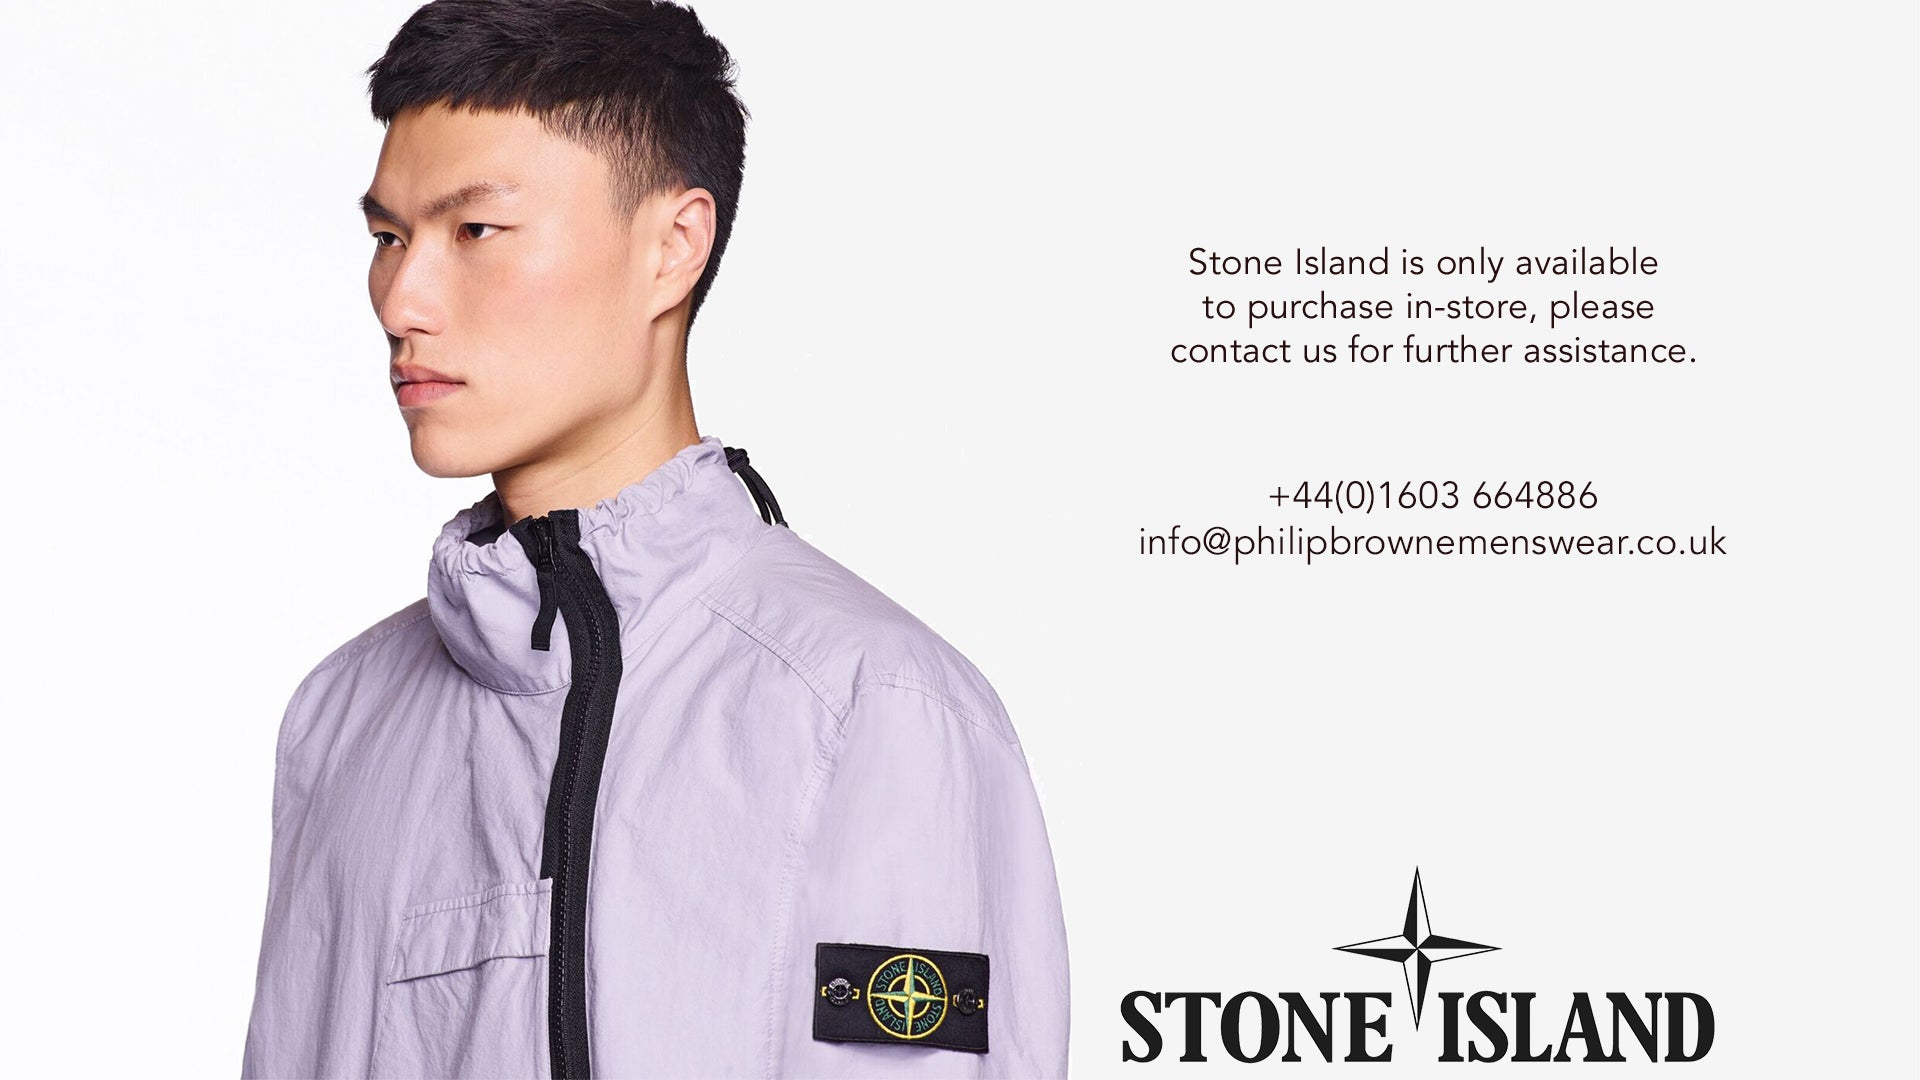 Stone Island is only available to purchase in-store, please contact us for further assistance